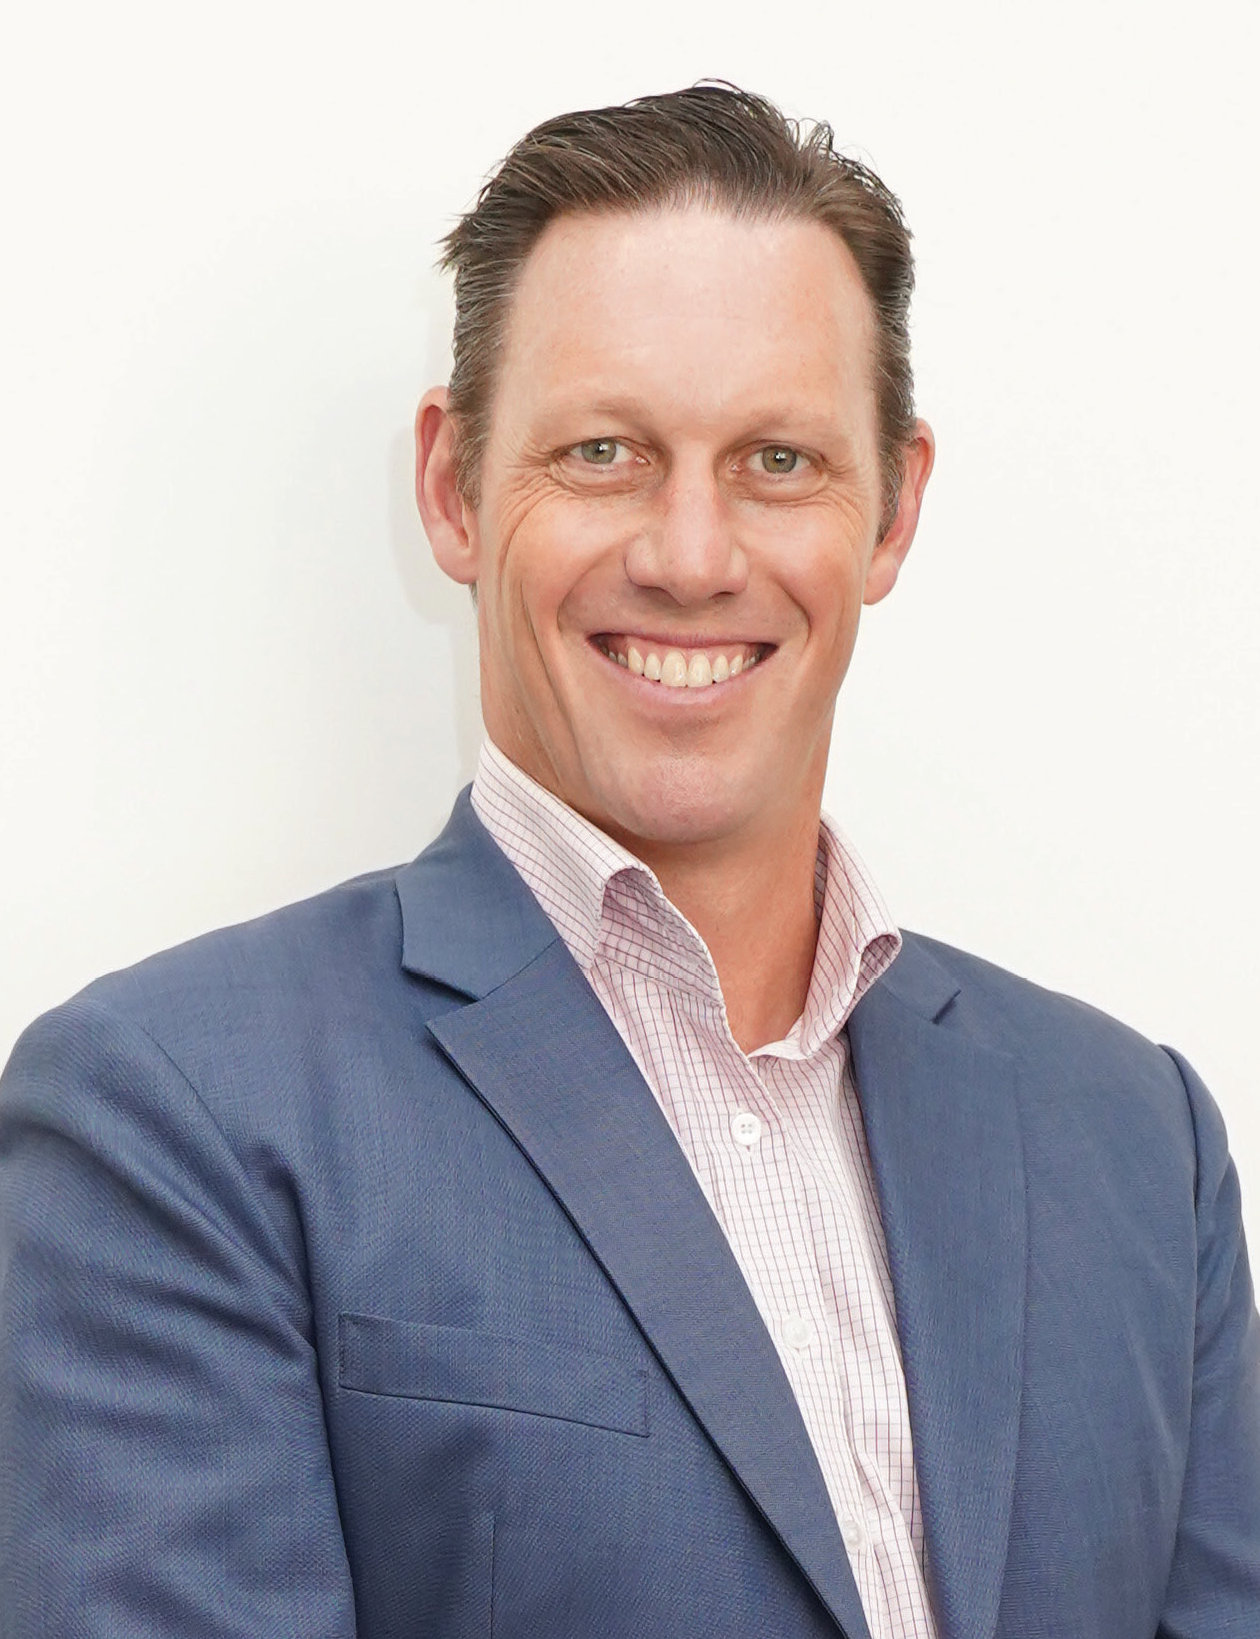 Michael Beresford, director – investment services at OpenCorp